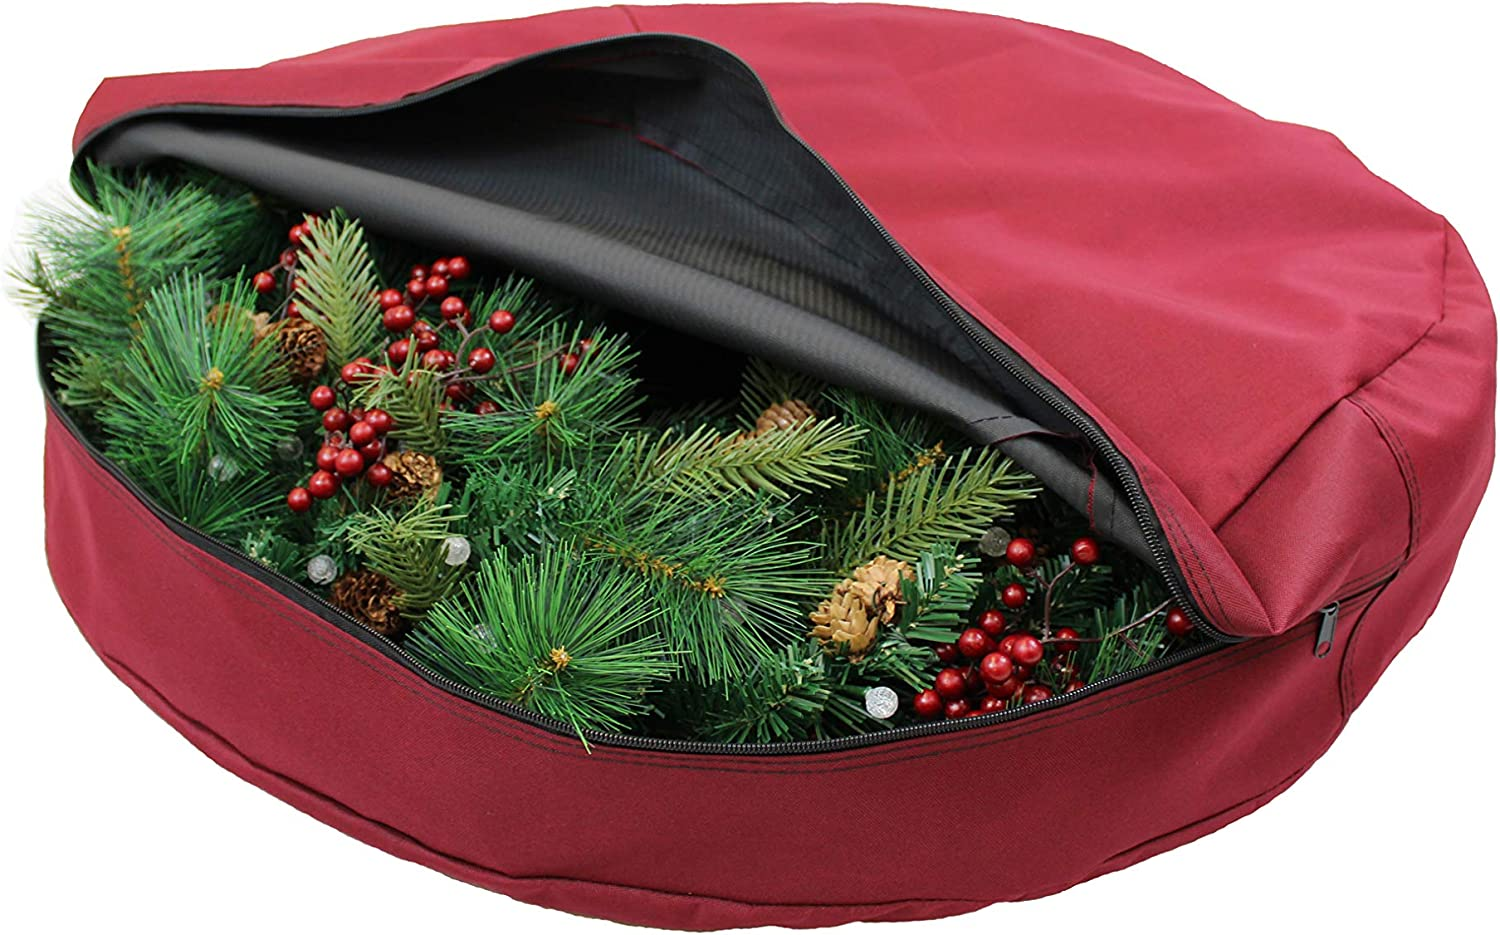 612 Vermont Super special price Christmas Wreath Storage Woven Bag Polyes Container quality assurance